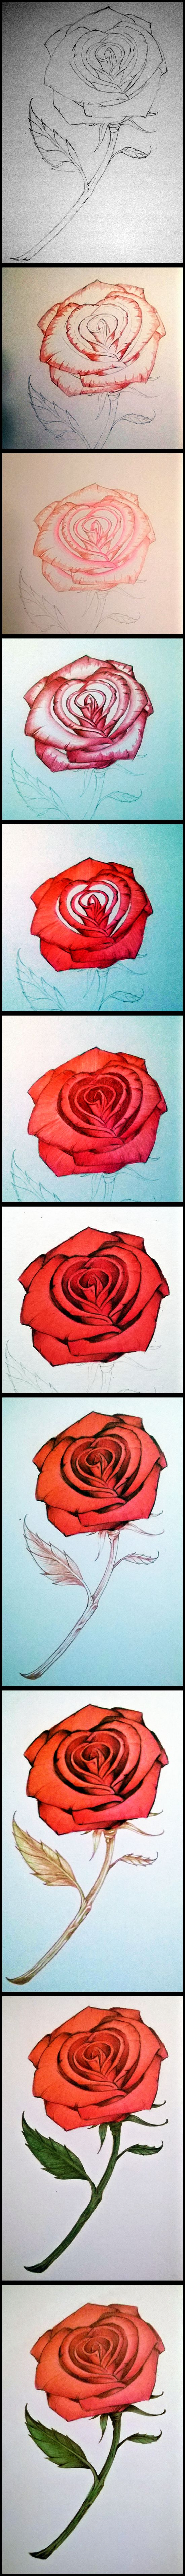 How To Draw A Red Rose With Colored Pencils